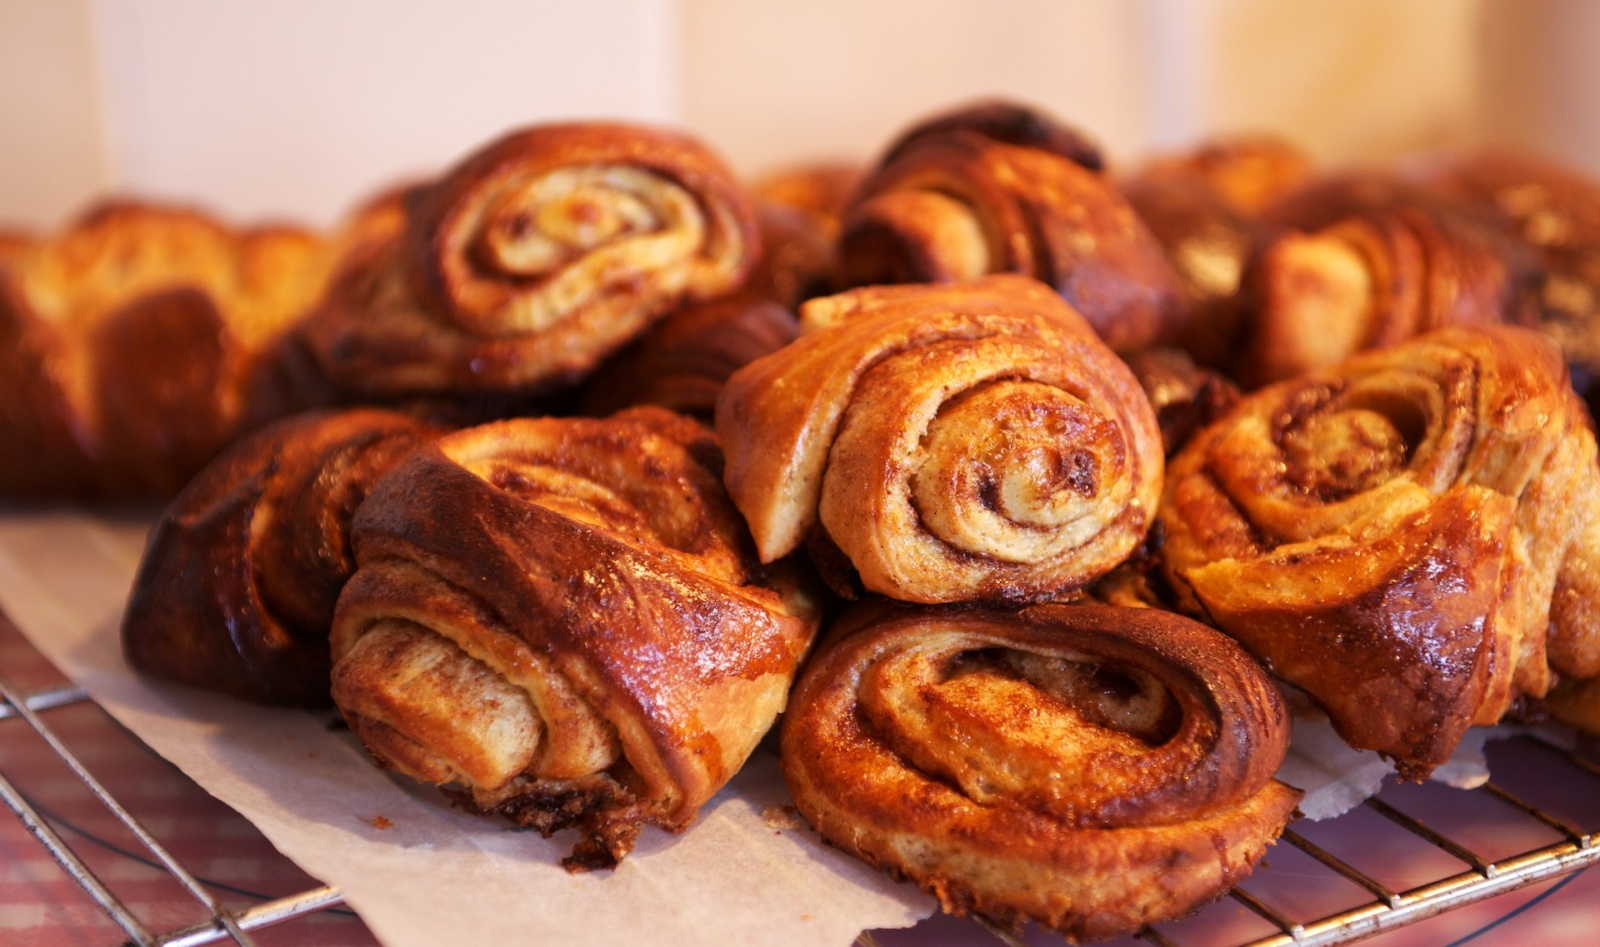 Finnish cinnamon buns - korvapuusti recipe